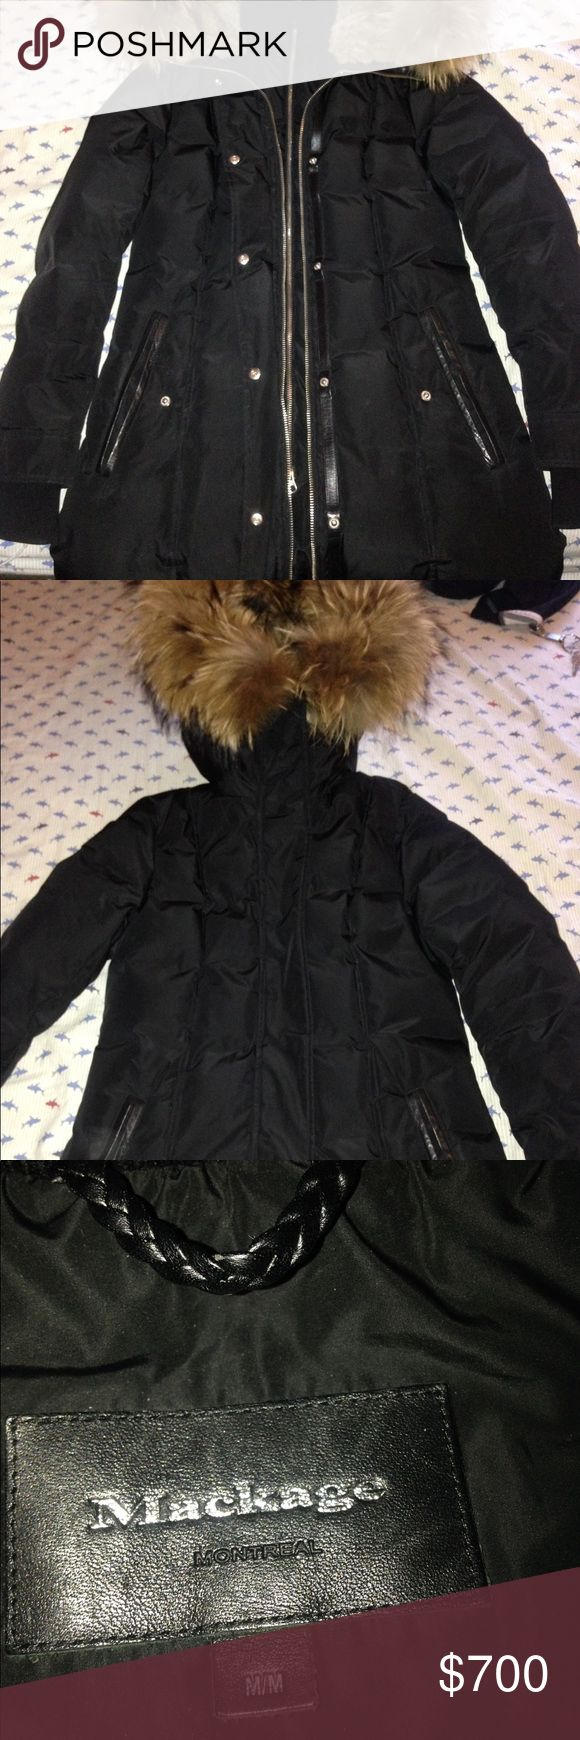 Brand New Mackage Jacket Brand New Mackage Jacket 100% Real Authentic  US Size M  Women's Only Mackage Jackets & Coats